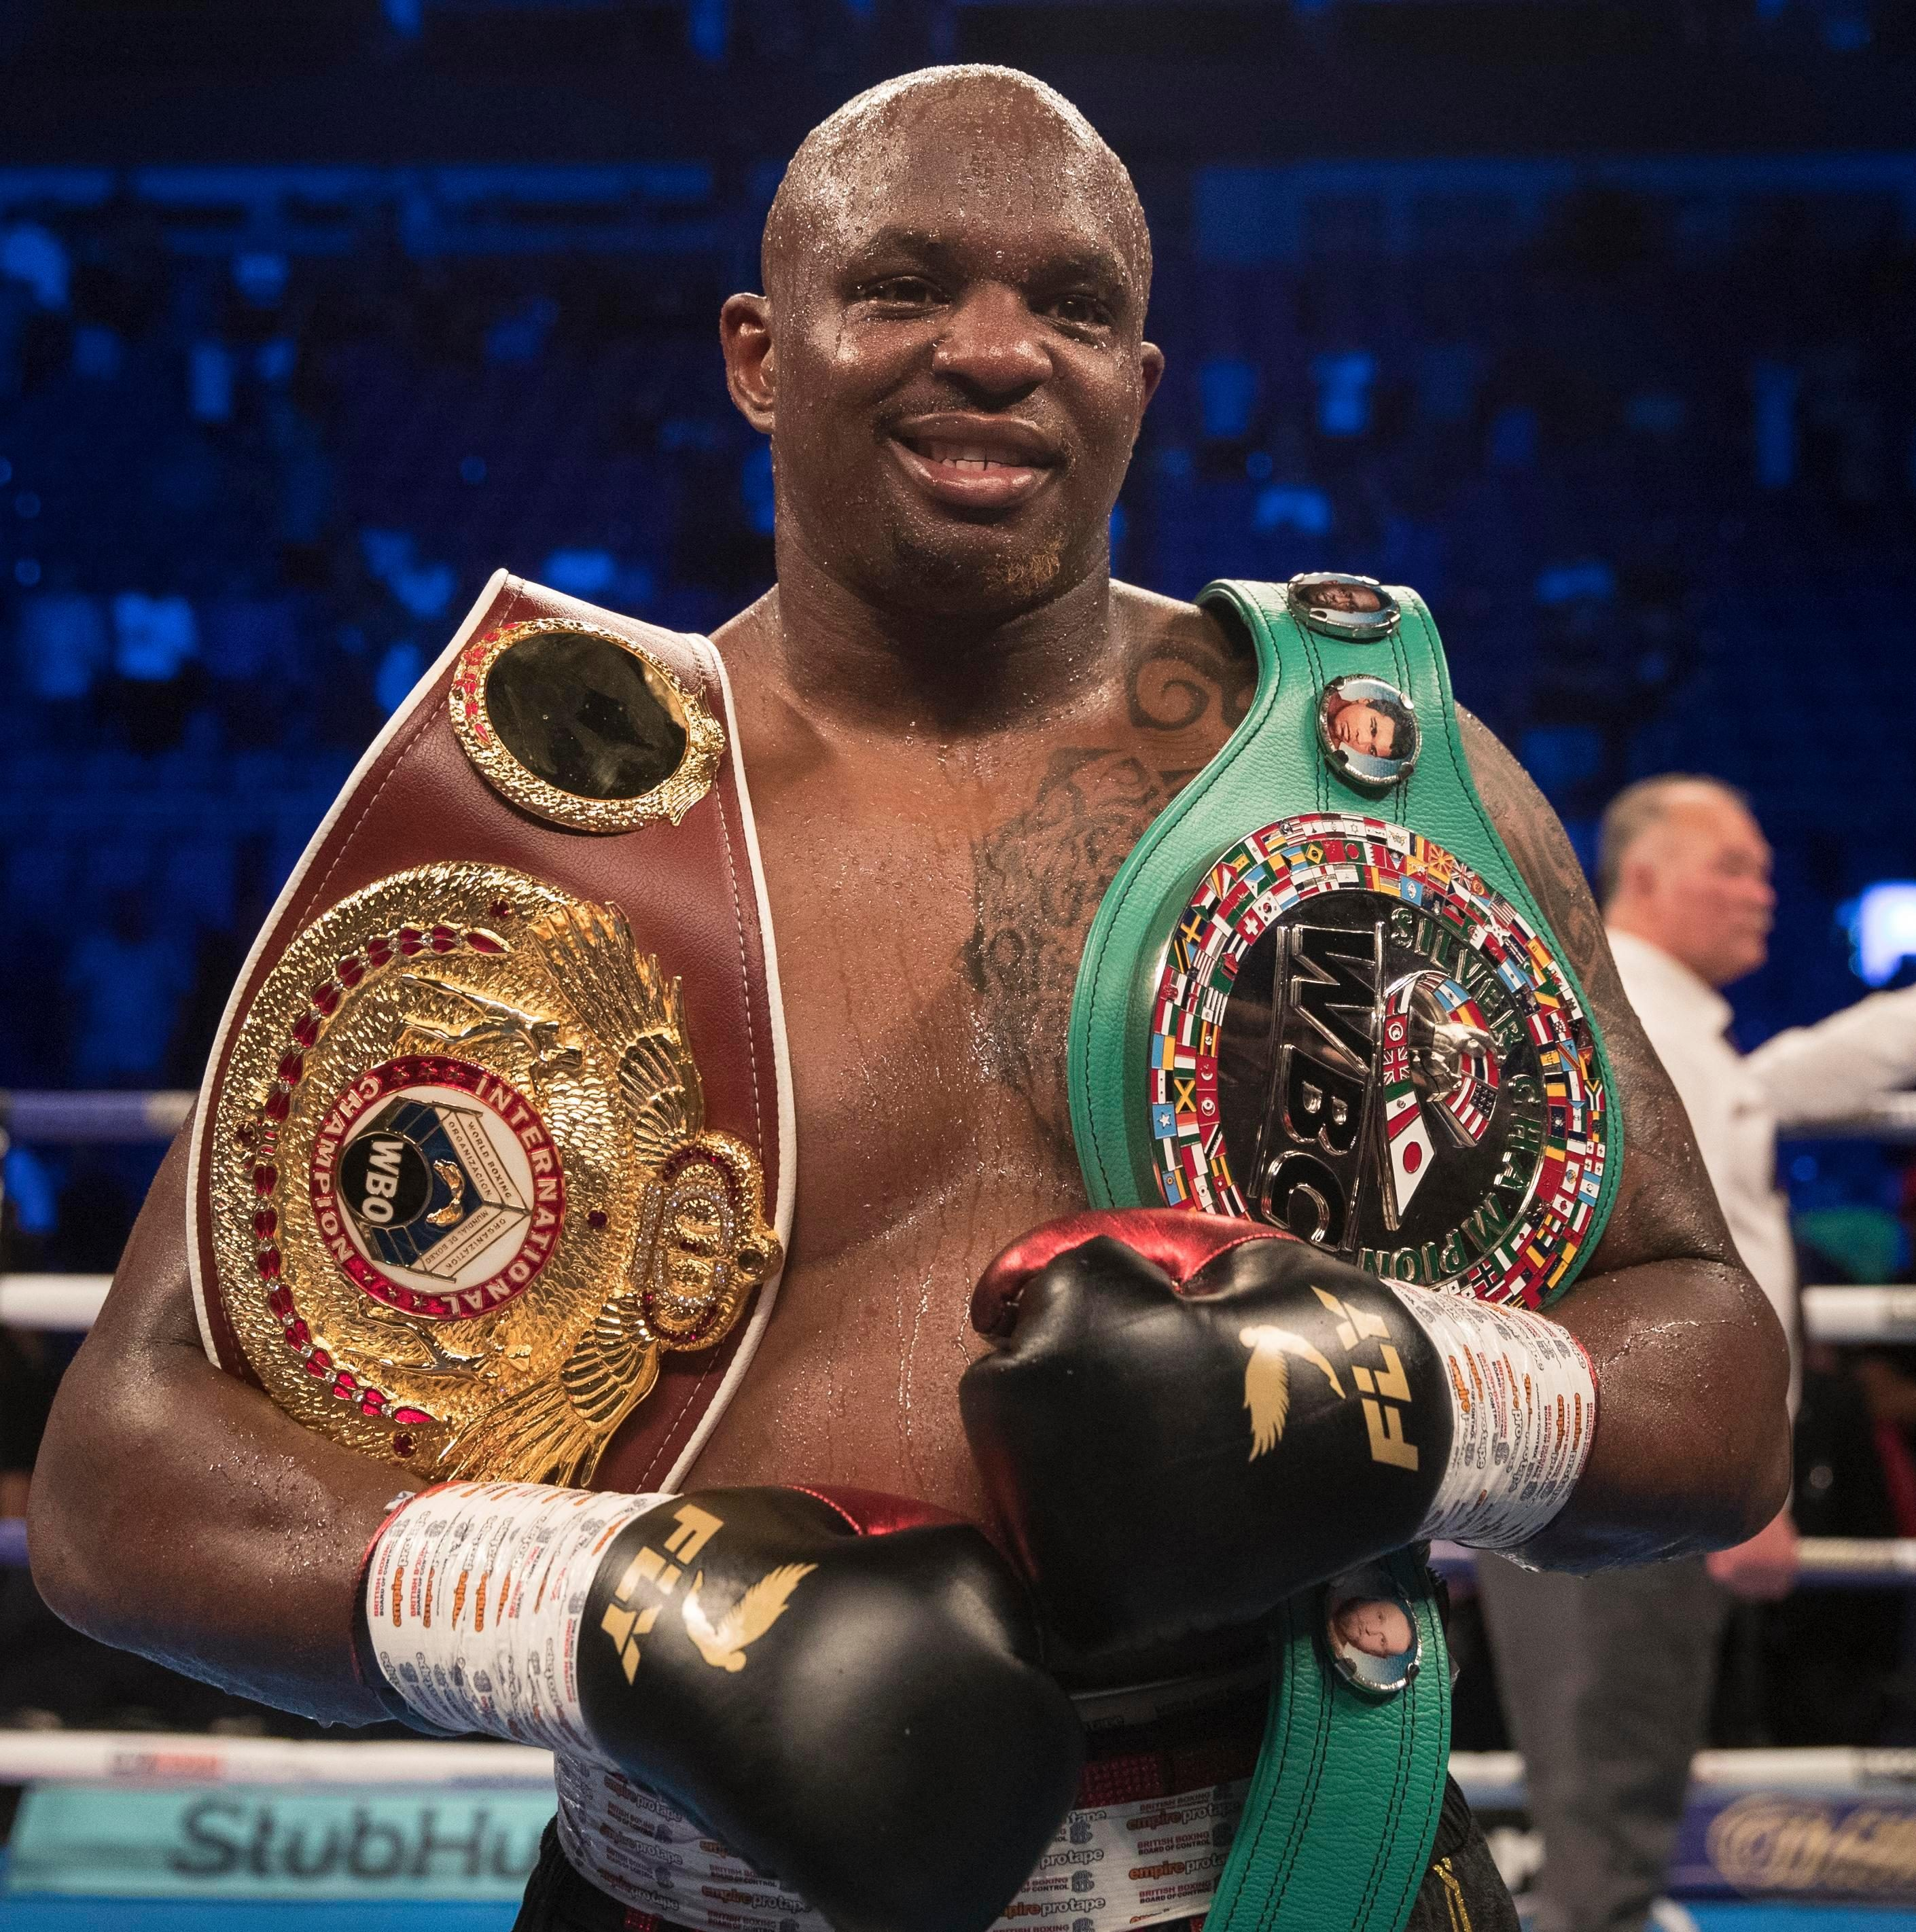 Dillian Whyte flattened Joseph Parker twice - the first two times it has happened to the New Zealande, who has lost just twice